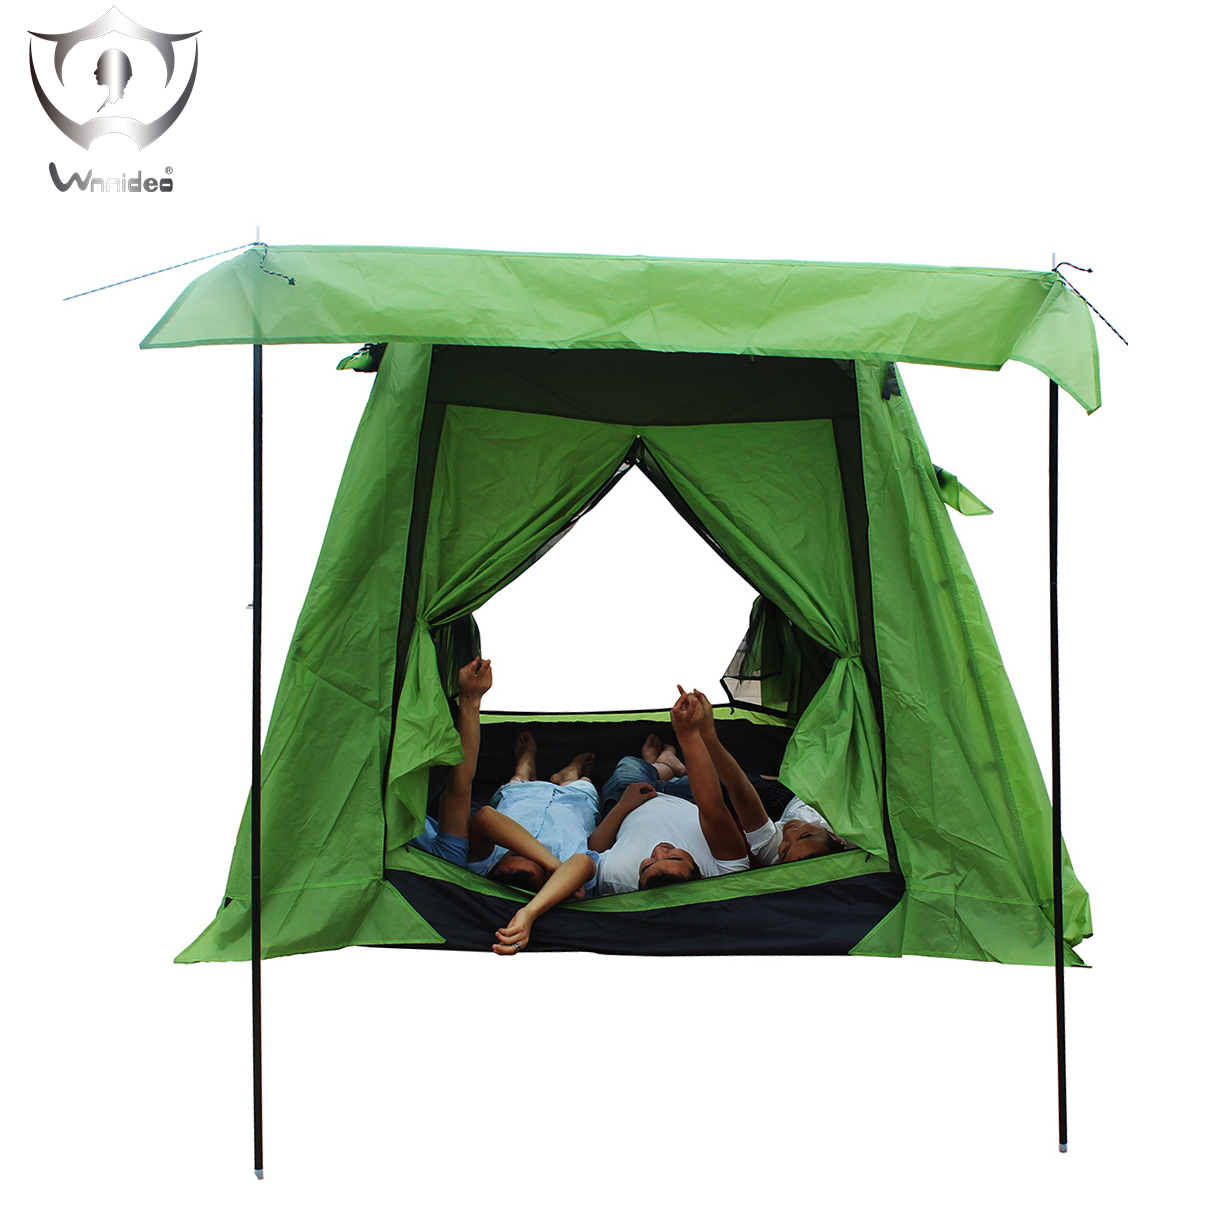 Wnnideo Outdoor Instant 3-4 Person Tent Double Layer Camping Tent One Bedroom One Living-room Waterproof 235*235 cm ZF6-2406 in one person